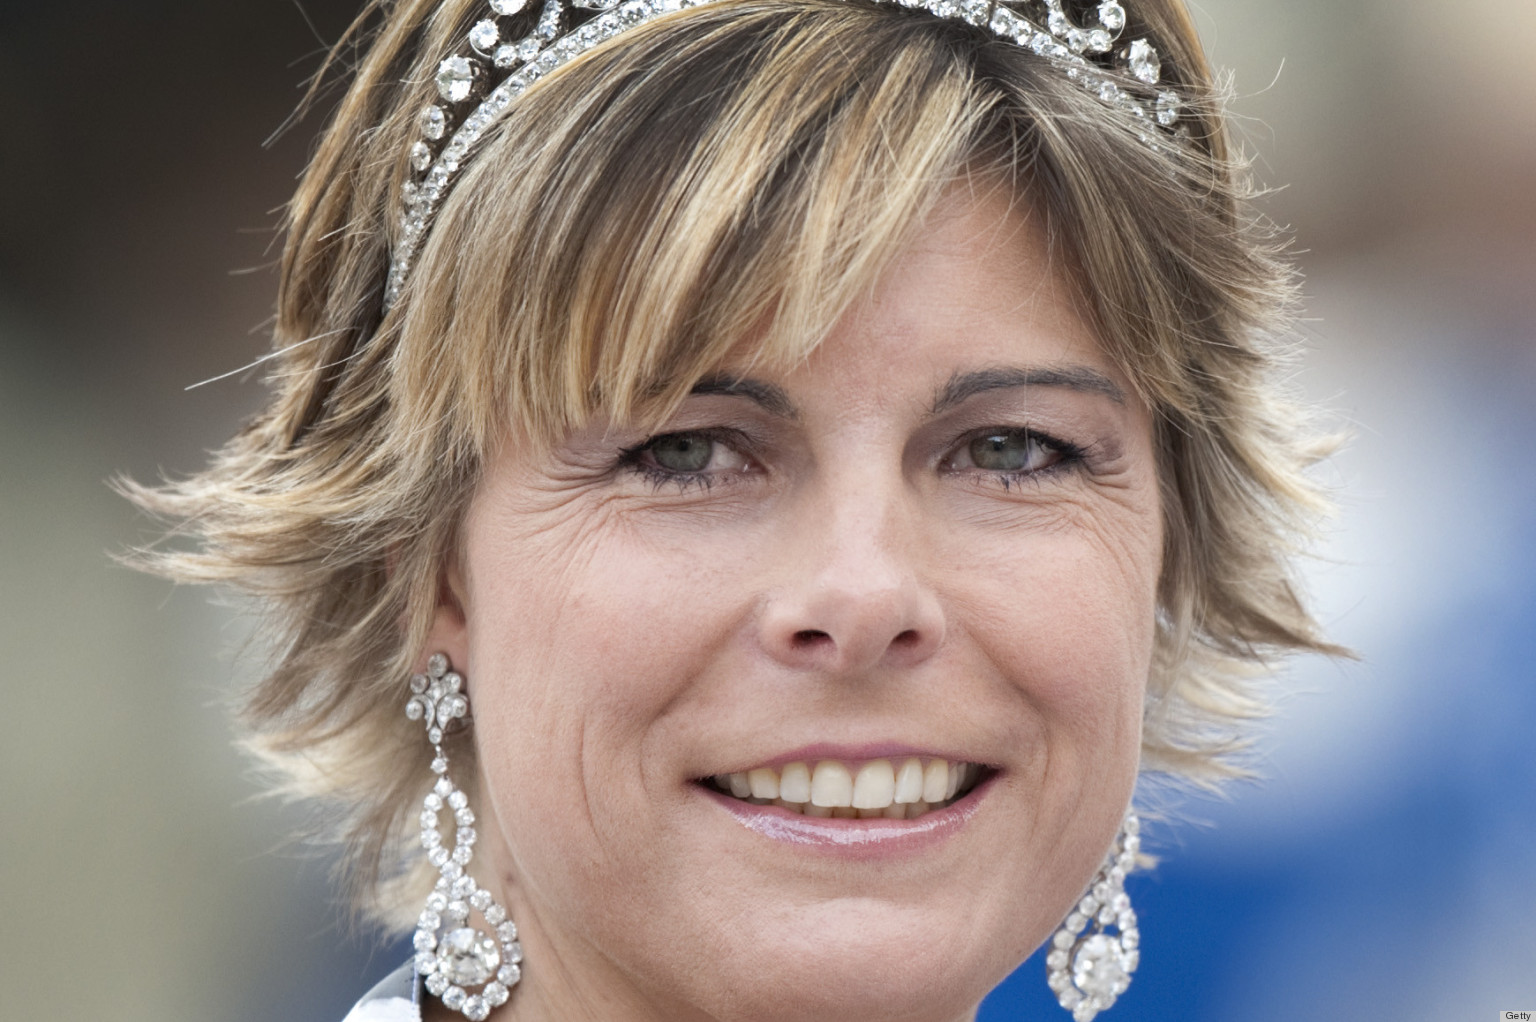 Princess Laurentien's Hair Sets Her Apart From Her Fellow Royals ...